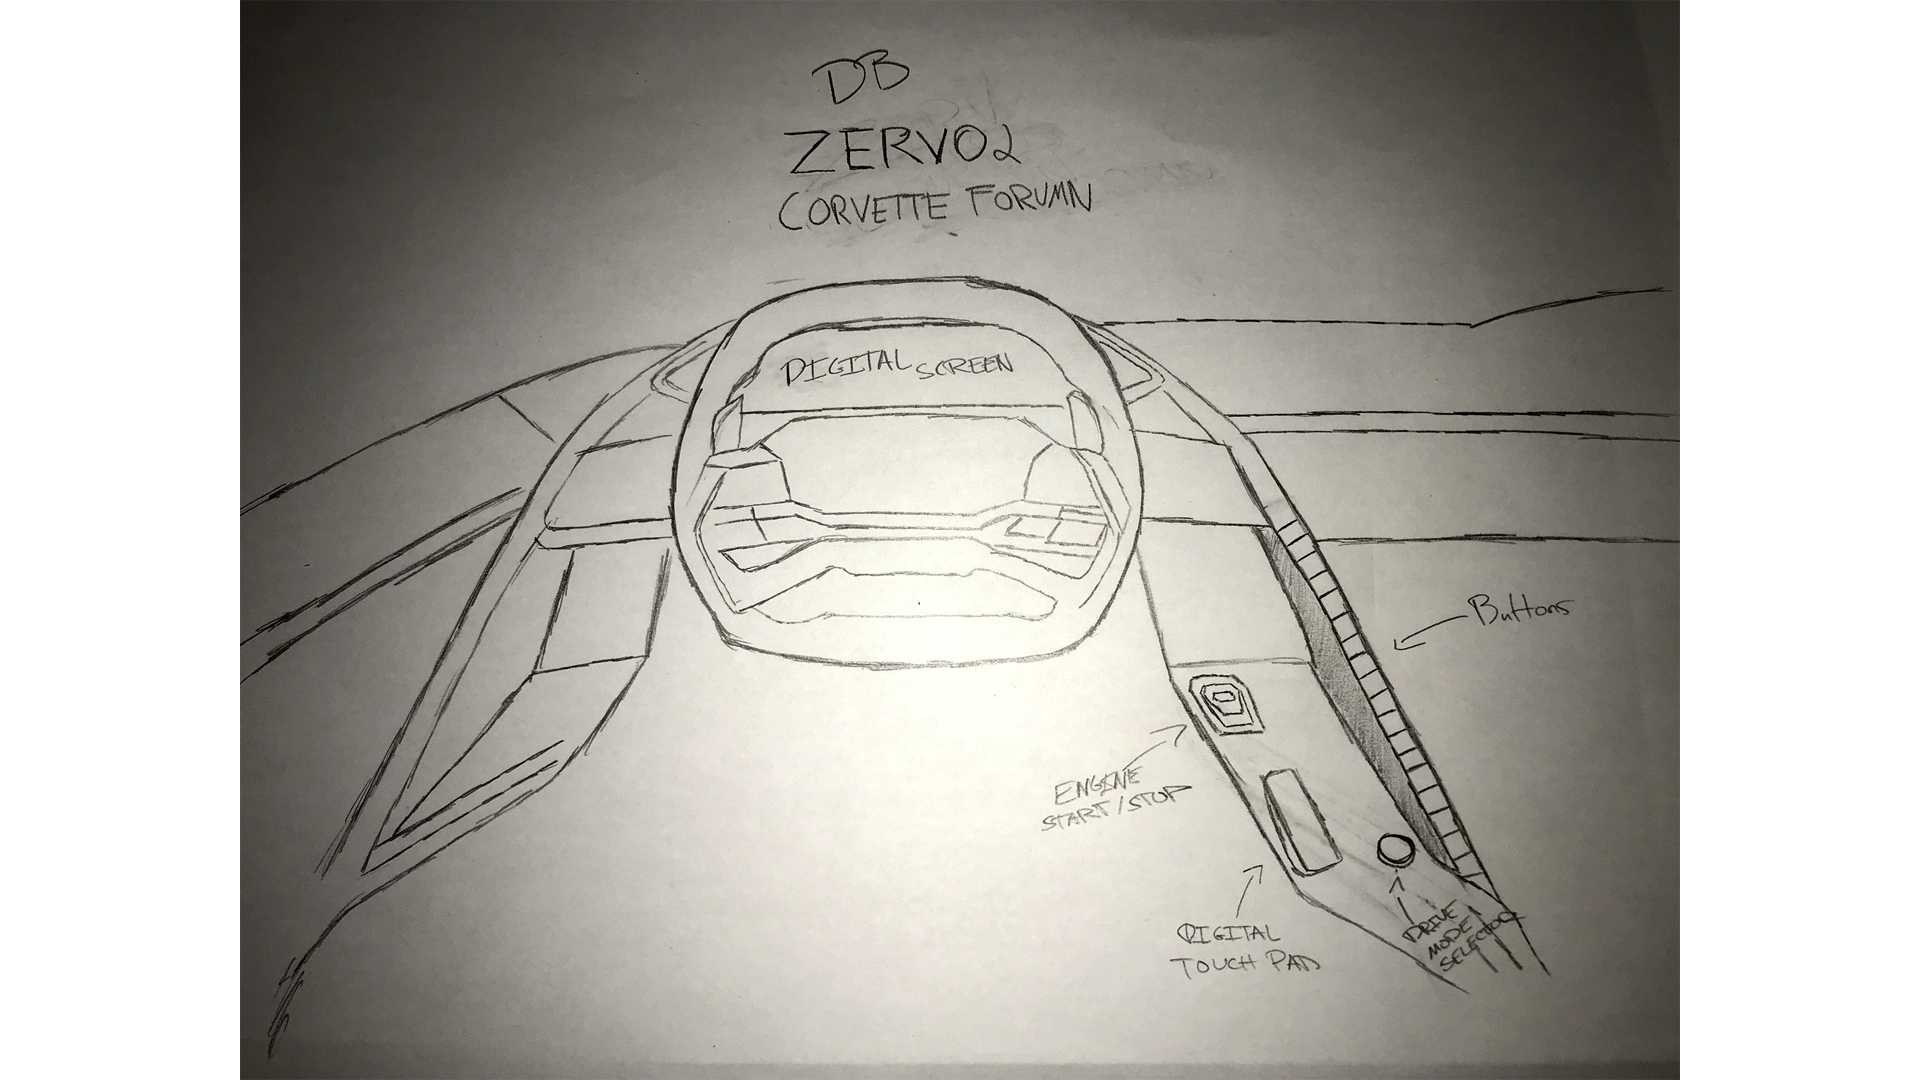 Mid Engined Corvette Interior Imagined In Fan Rendering Engine Diagram